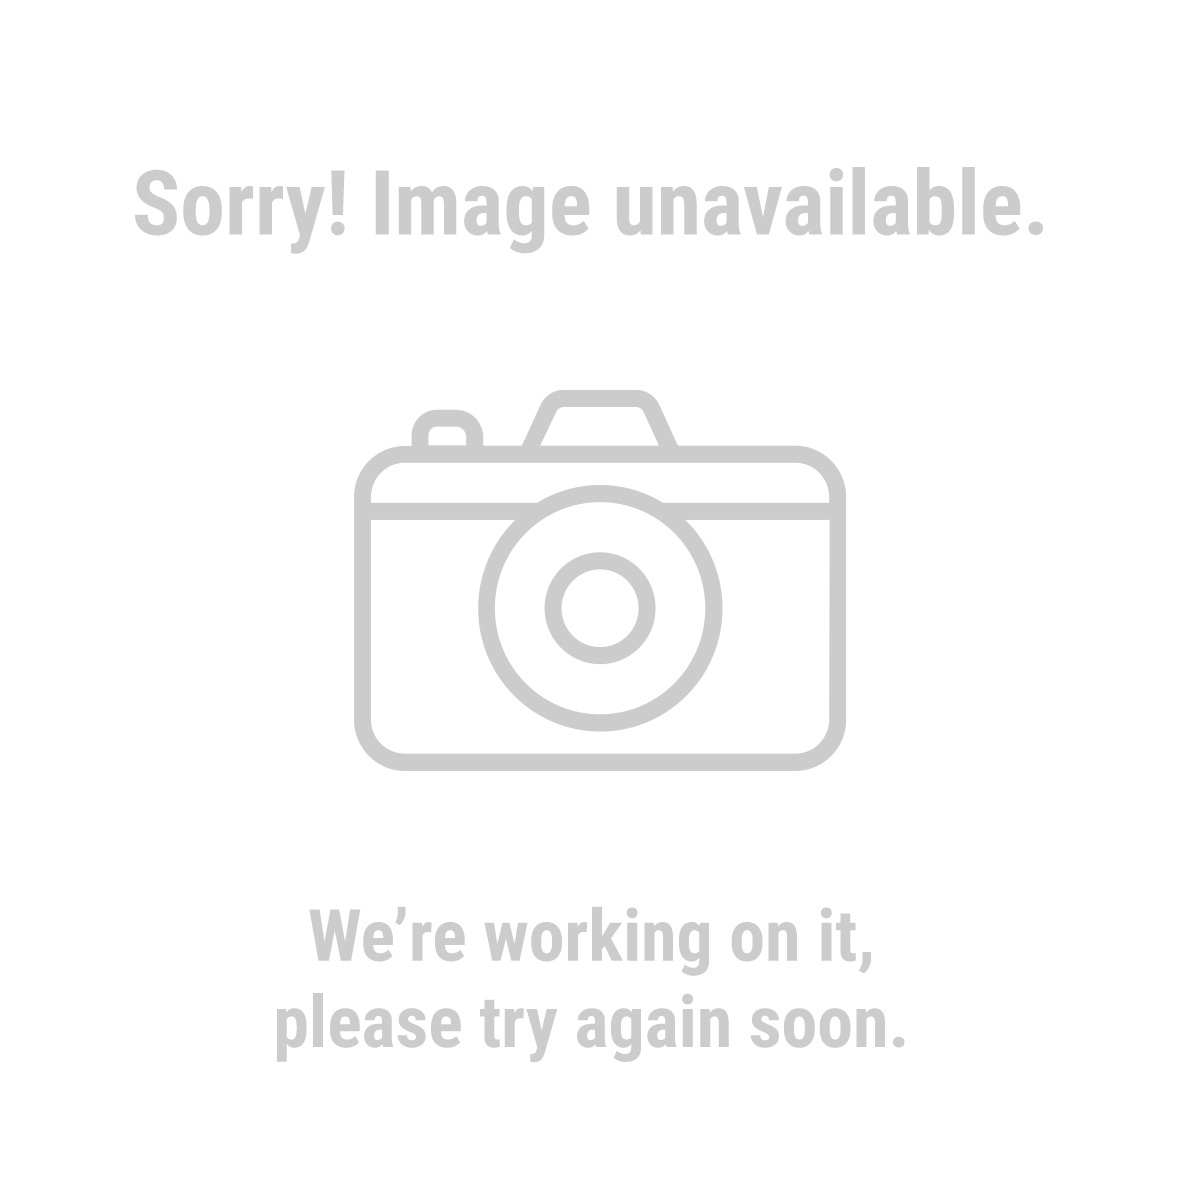 10 Ton Super Heavy Duty Portable Hydraulic Equipment Kit